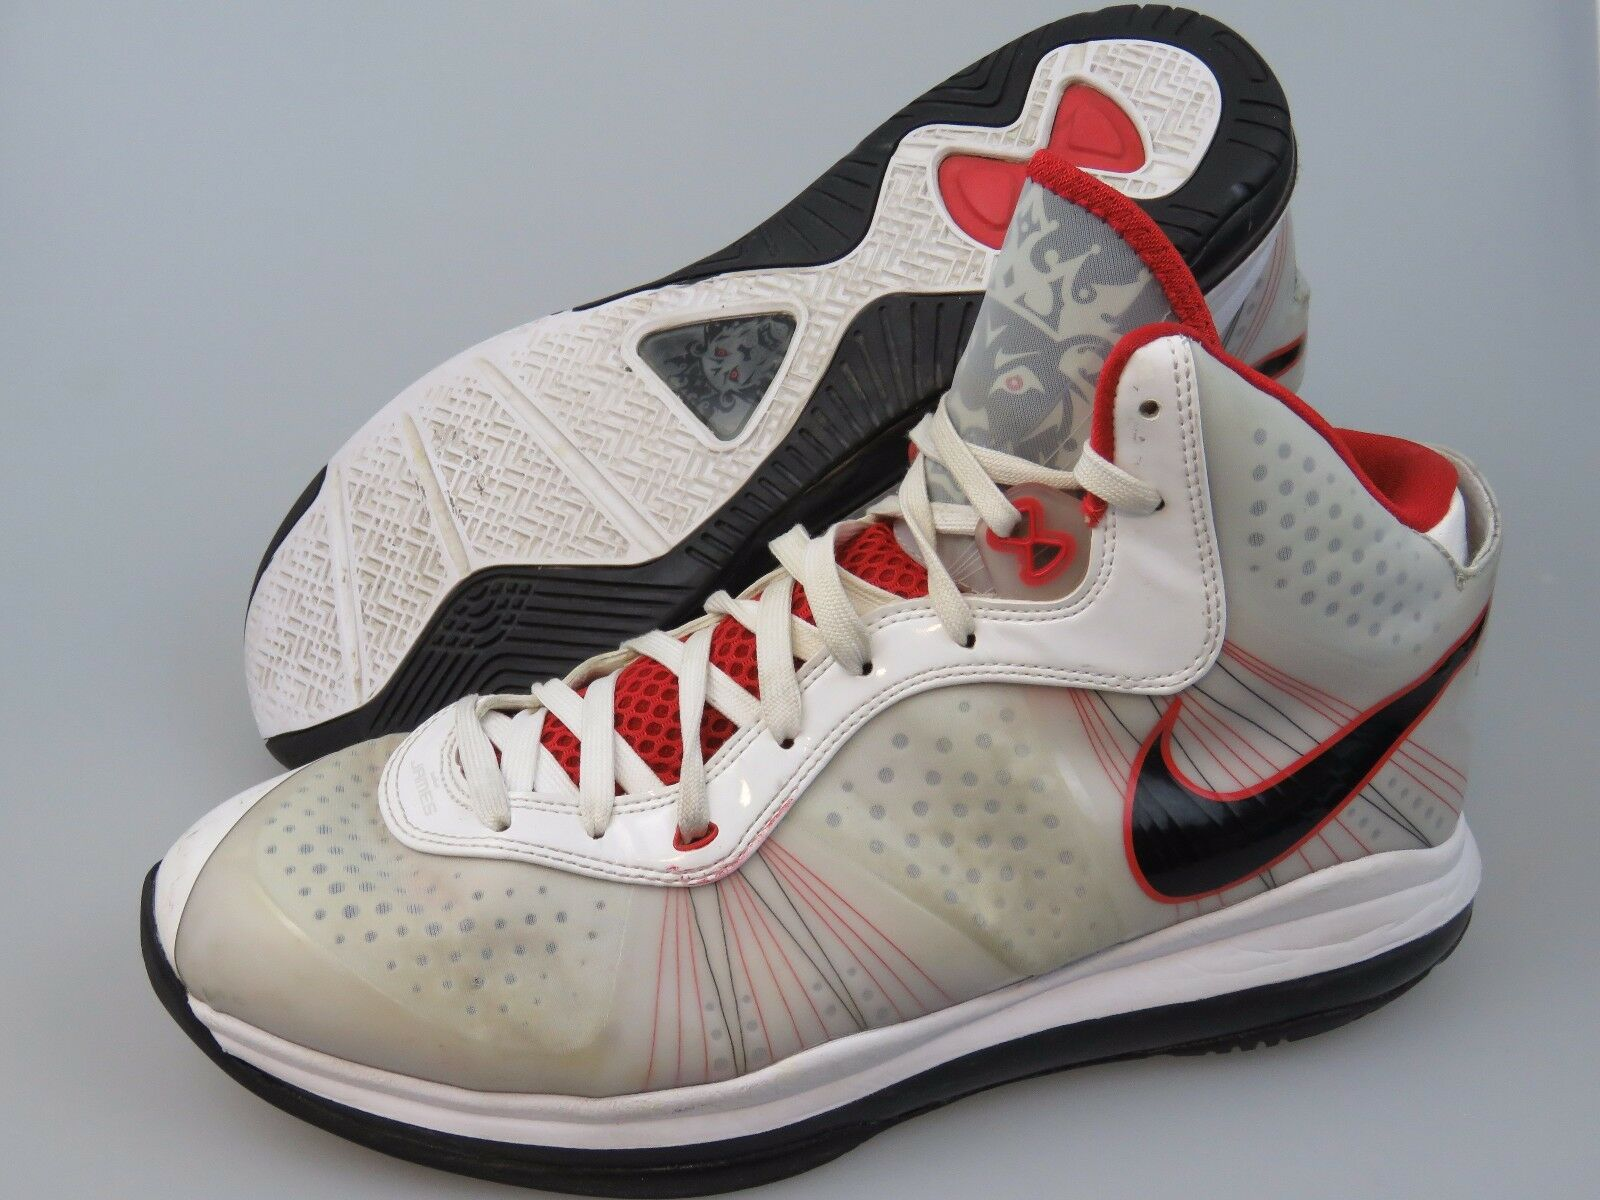 newest collection 79089 06fa3 ... get nike air max lebron james viii zapatos 429676 2018 blanco rojo  zapatos viii de baloncesto